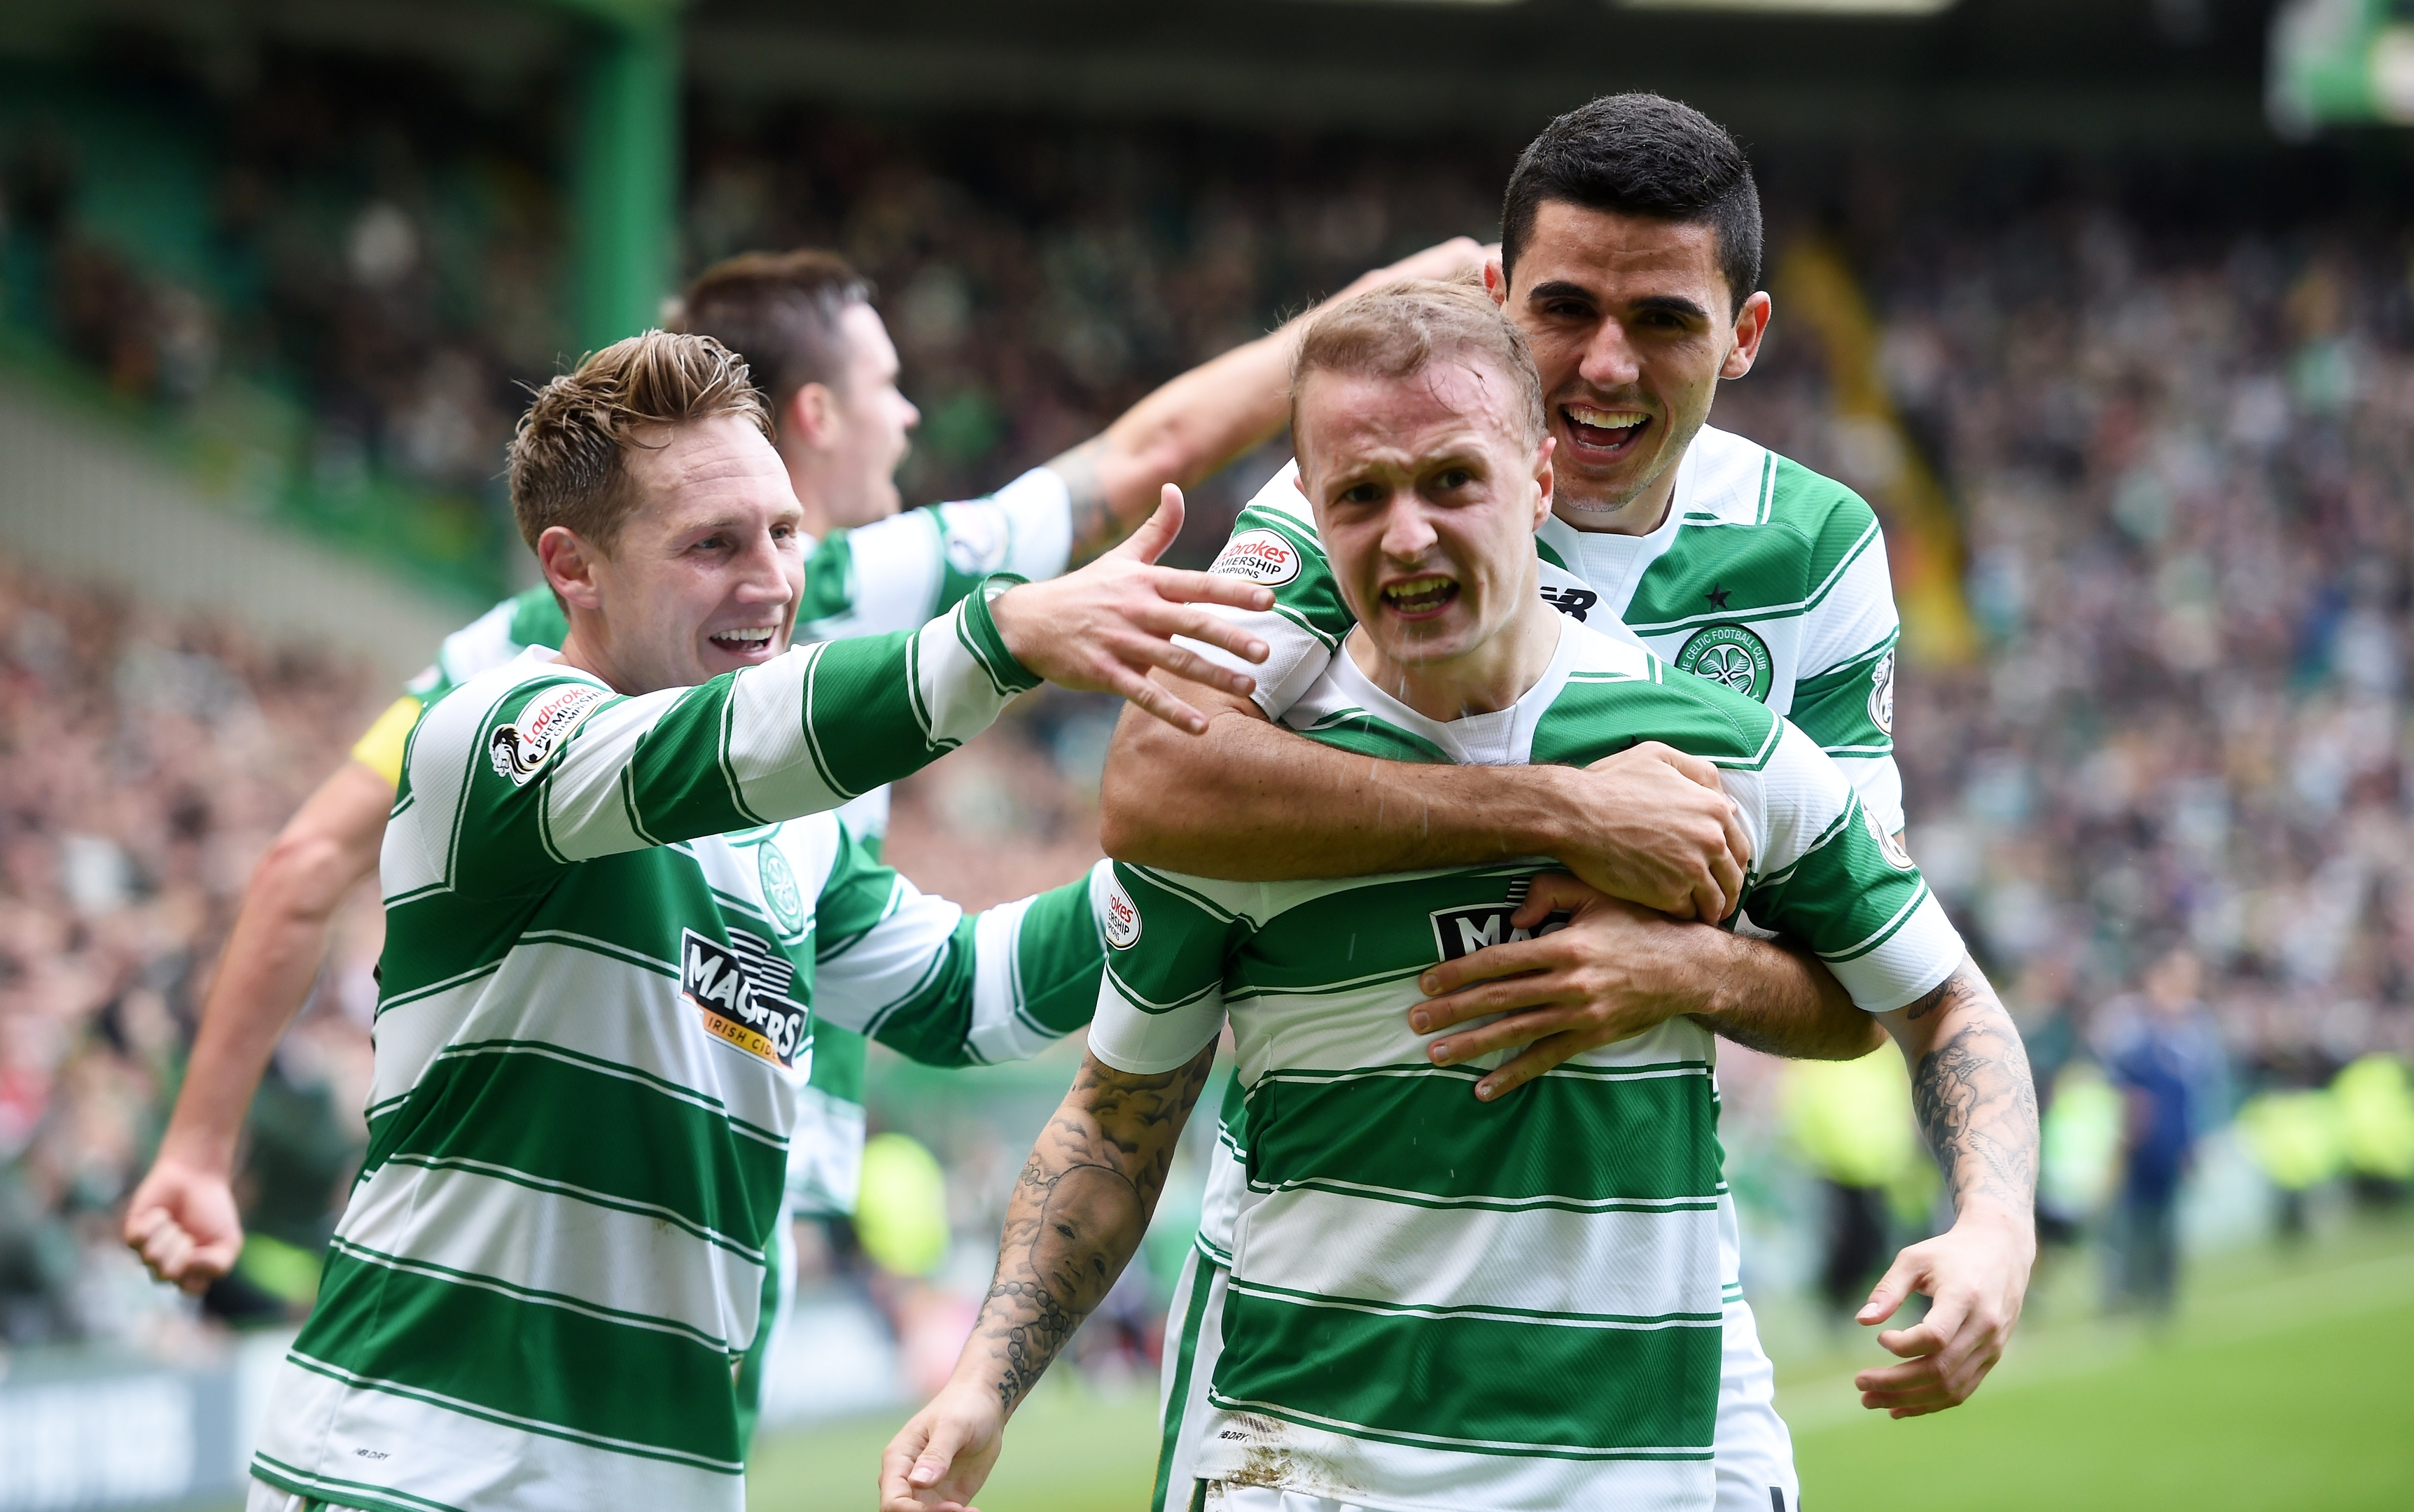 Celtic's Leigh Griffiths celebrates scoring from the spot with team-mates Tom Rogic (right) and Kris Commons